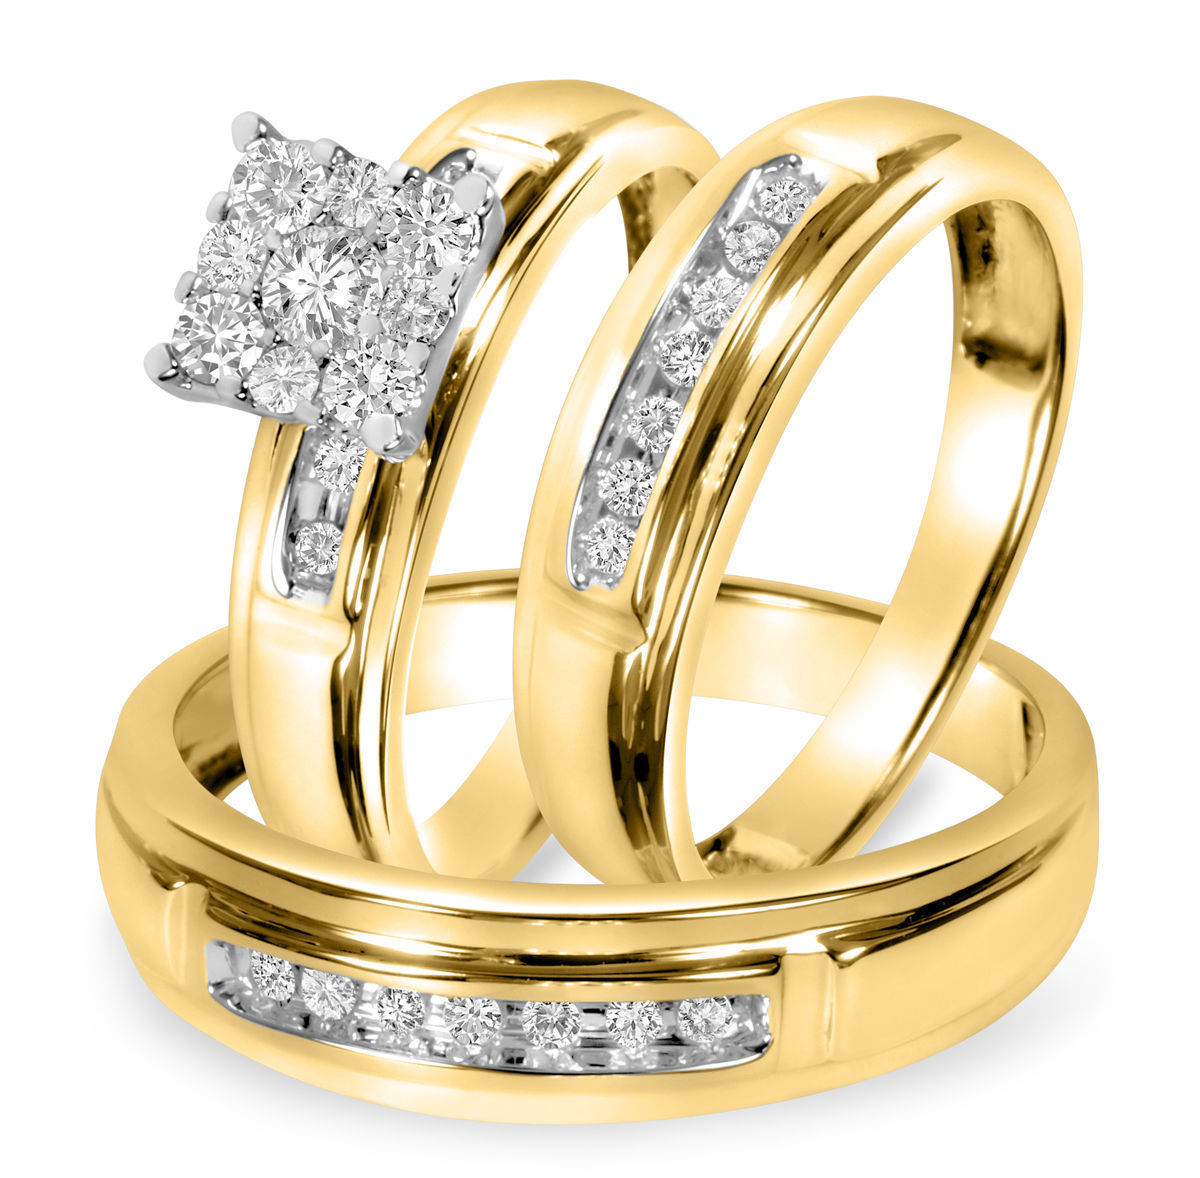 Primary image for 1/2 CT Round Sim Diamond Matching Trio Wedding Ring Set In 14K Yellow Gold Over